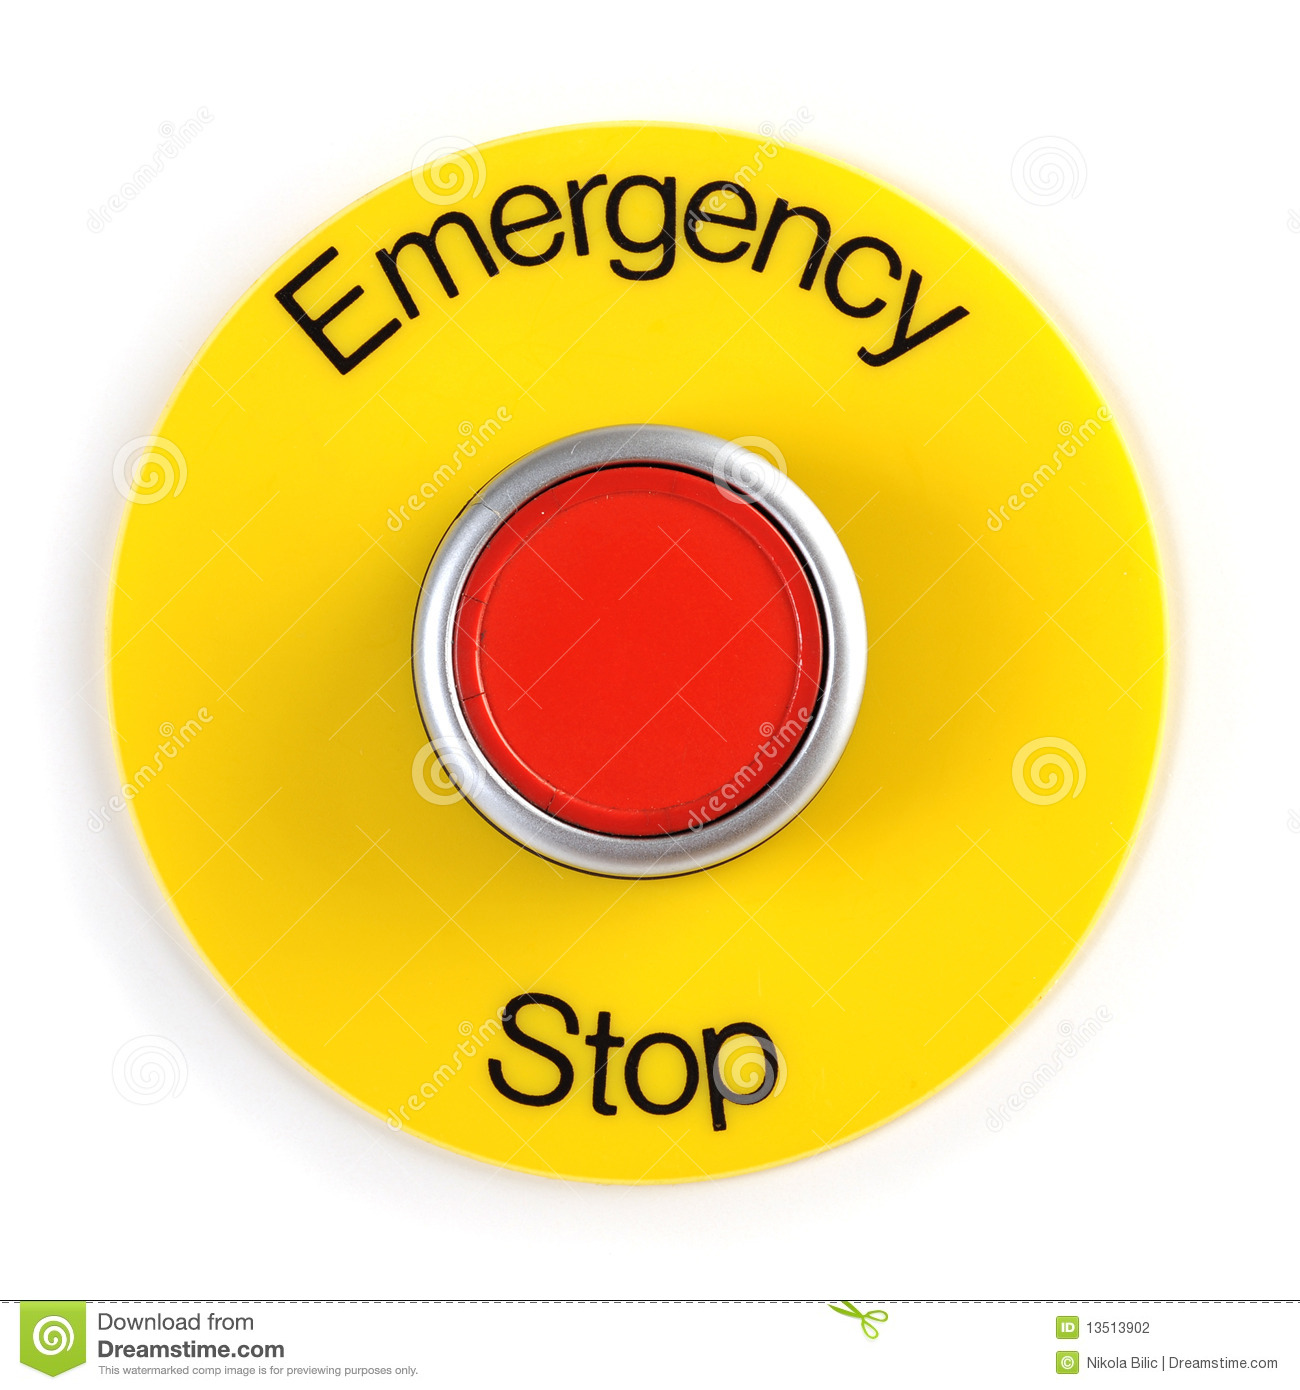 Emergency Stop Button Clipart.